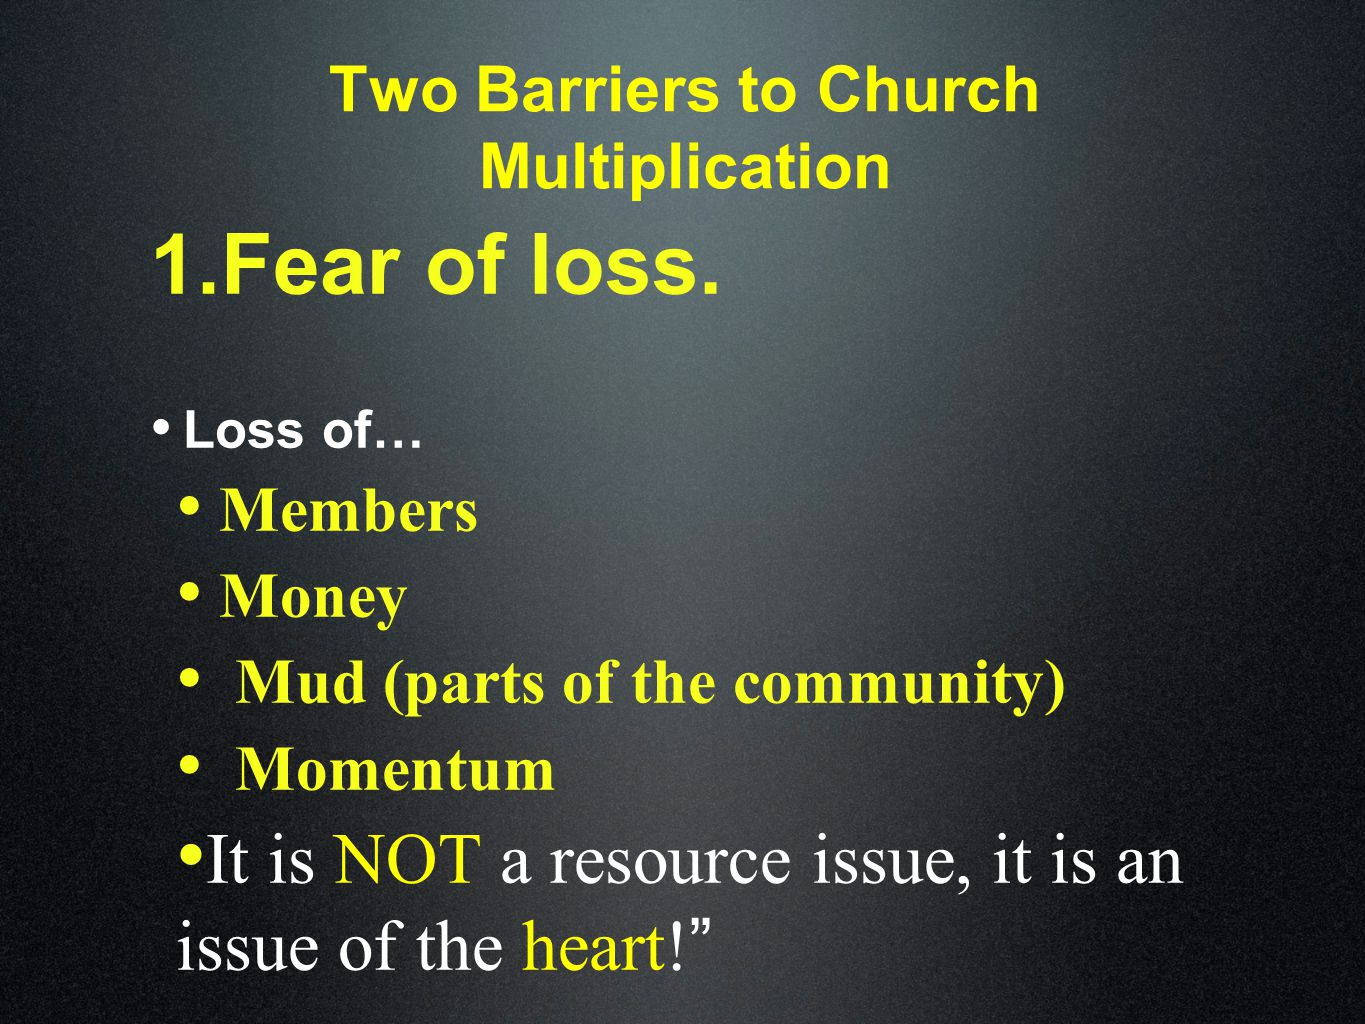 Two Barriers to Church Multiplication 1. Fear of loss.